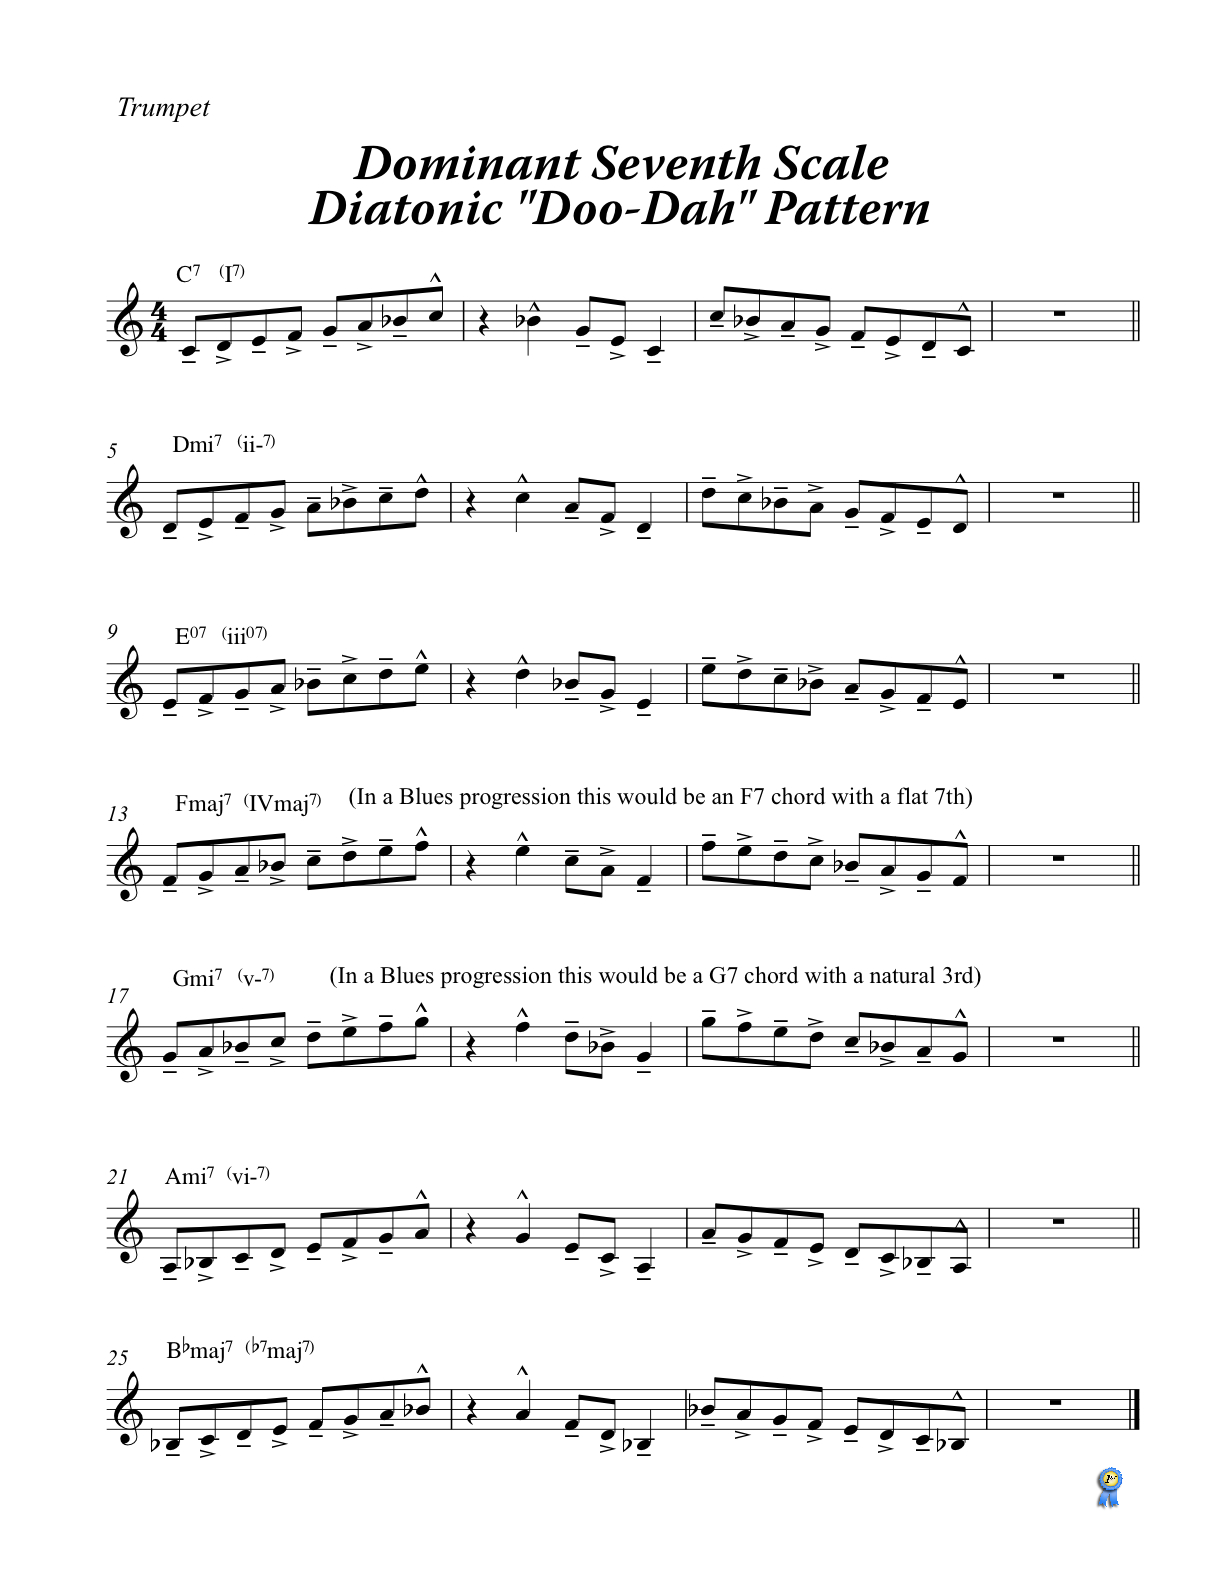 Dominant 7th Scale Diatonic Scales